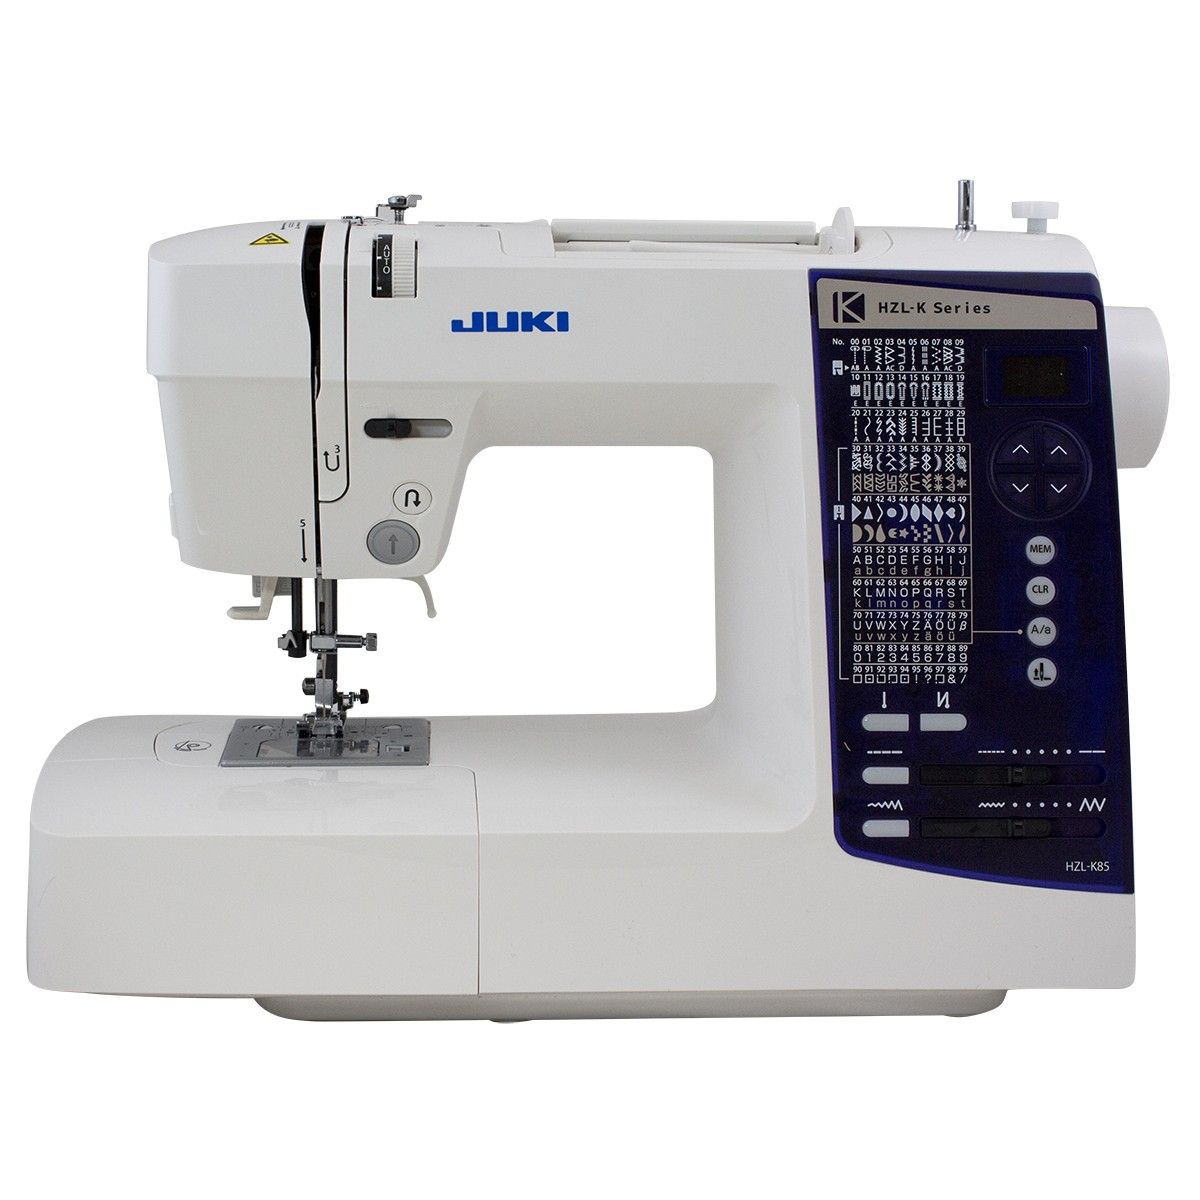 juki new echnology Sewing Machines